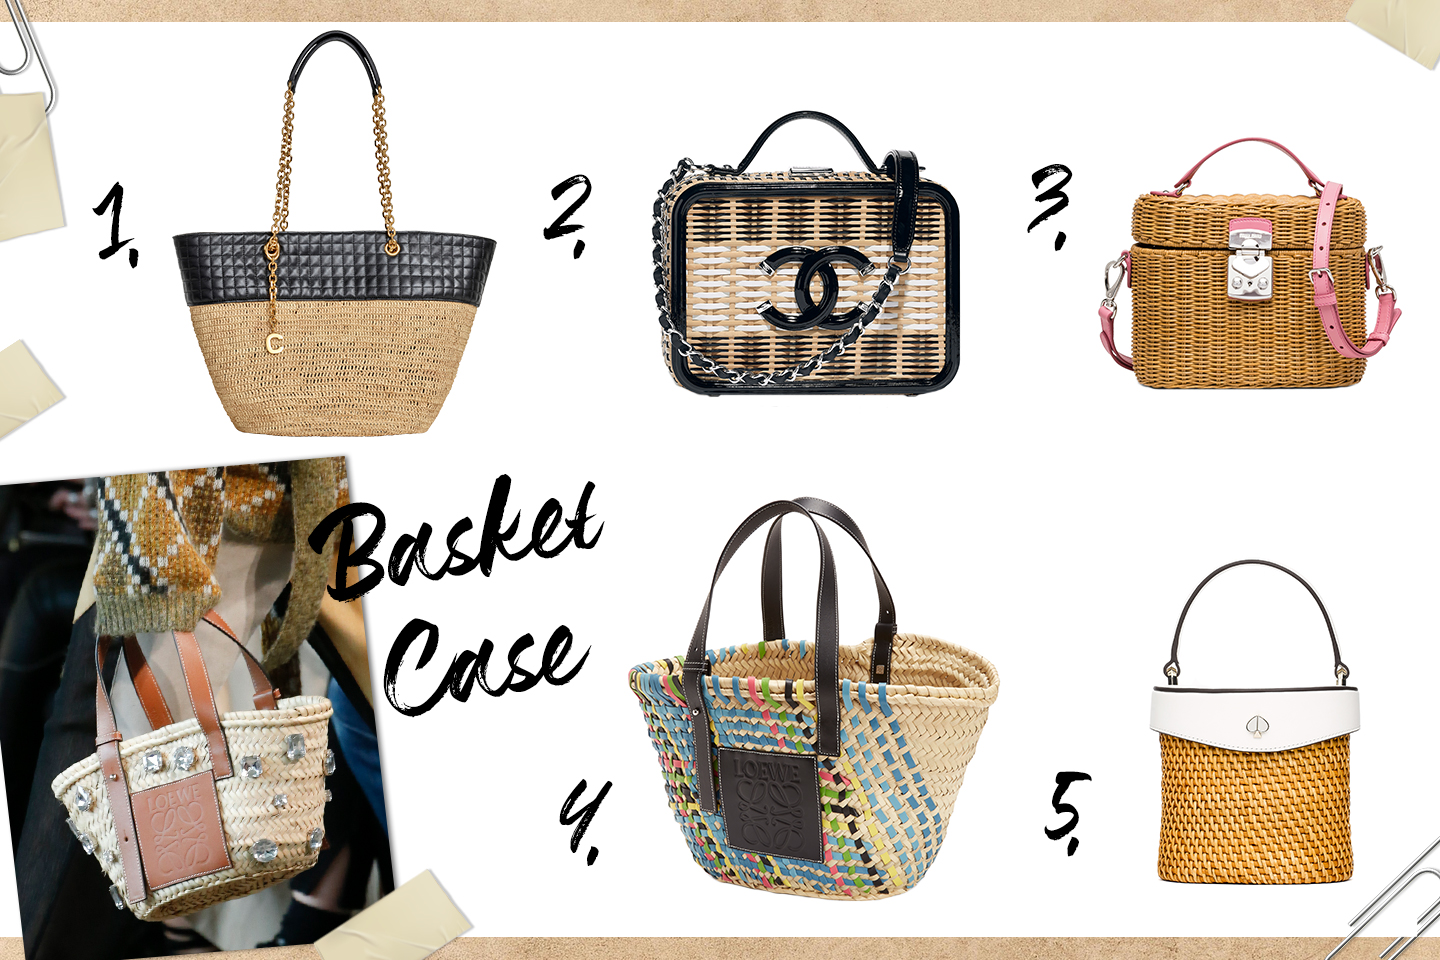 2739b5ac854558 Rattan and patent leather handbag with chain sling, by Chanel, 3. Wicker  top handle basket with detachable sling, by Miu Miu, 4.